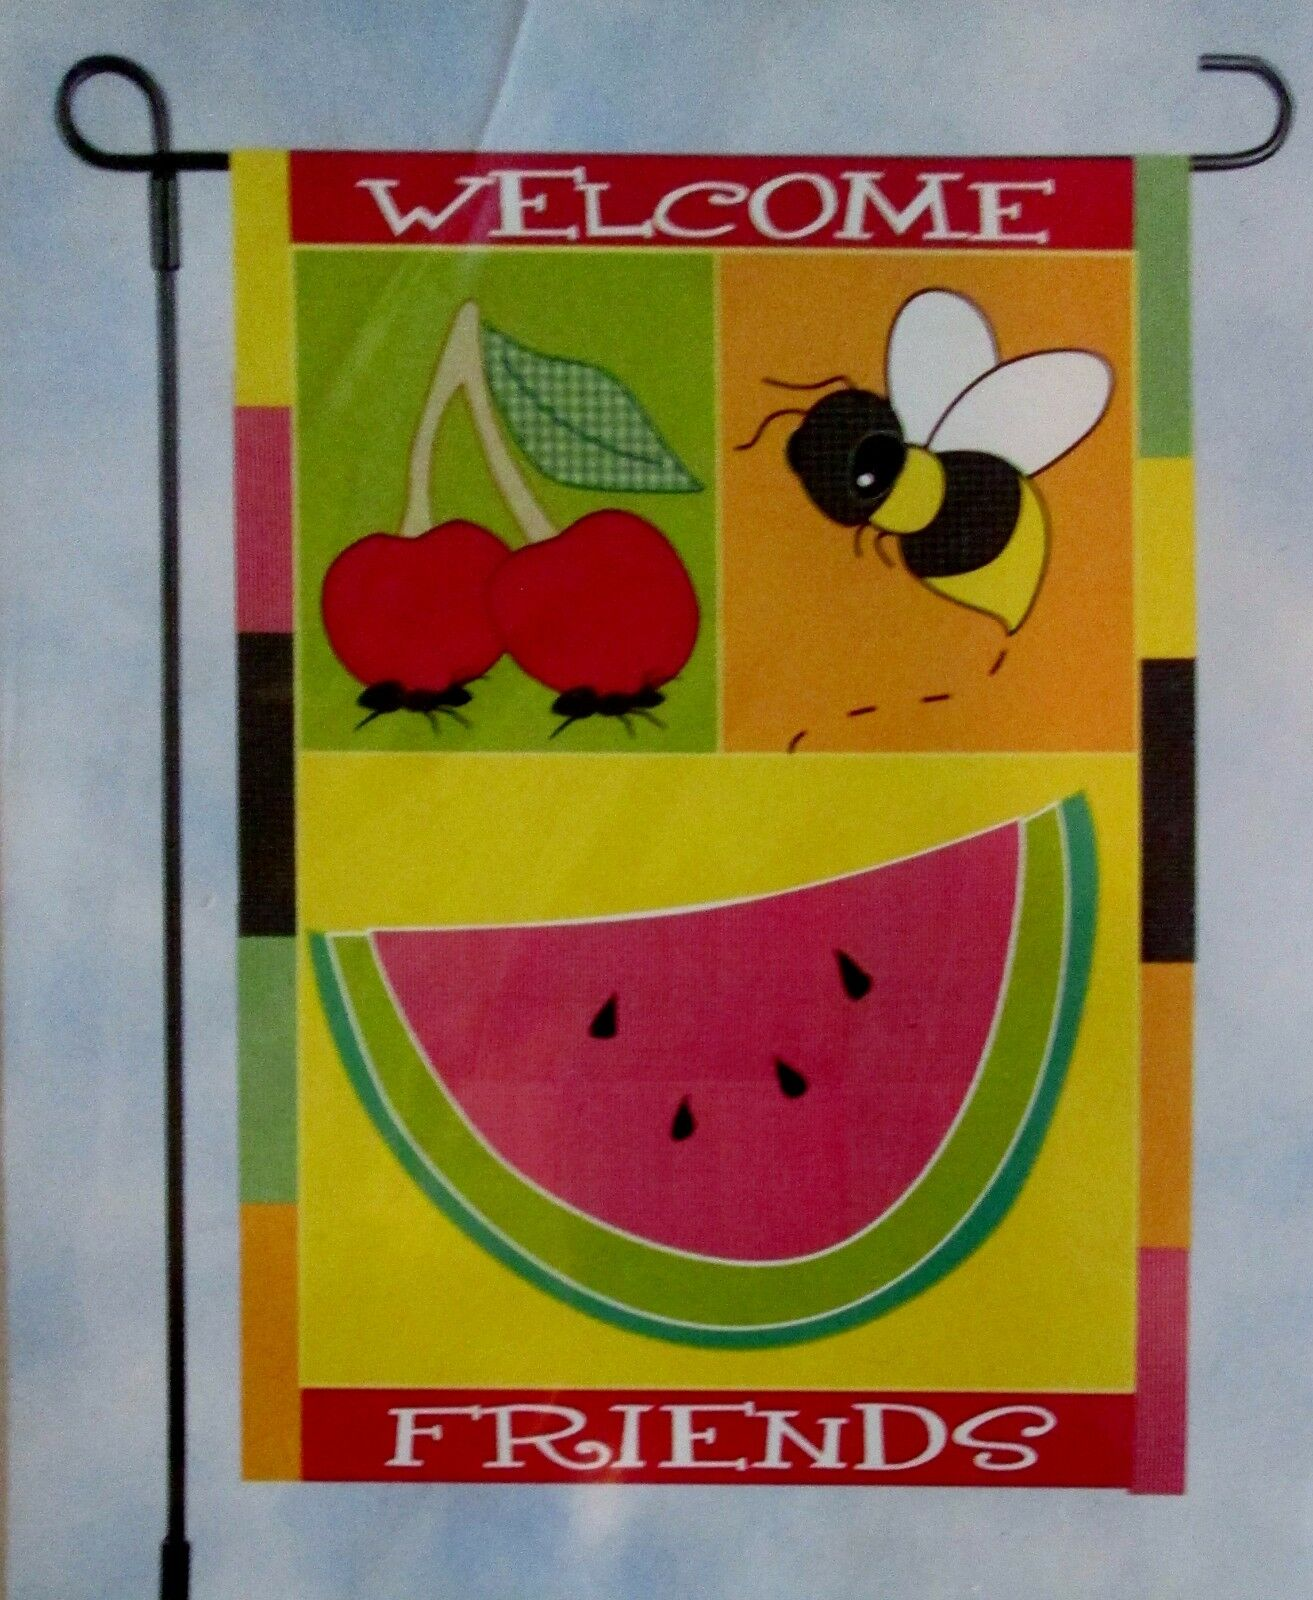 NEW LARGE FLAG BANNER 28X40 WELCOME FRIENDS Watermelon BEES Cherry SPRING Summer